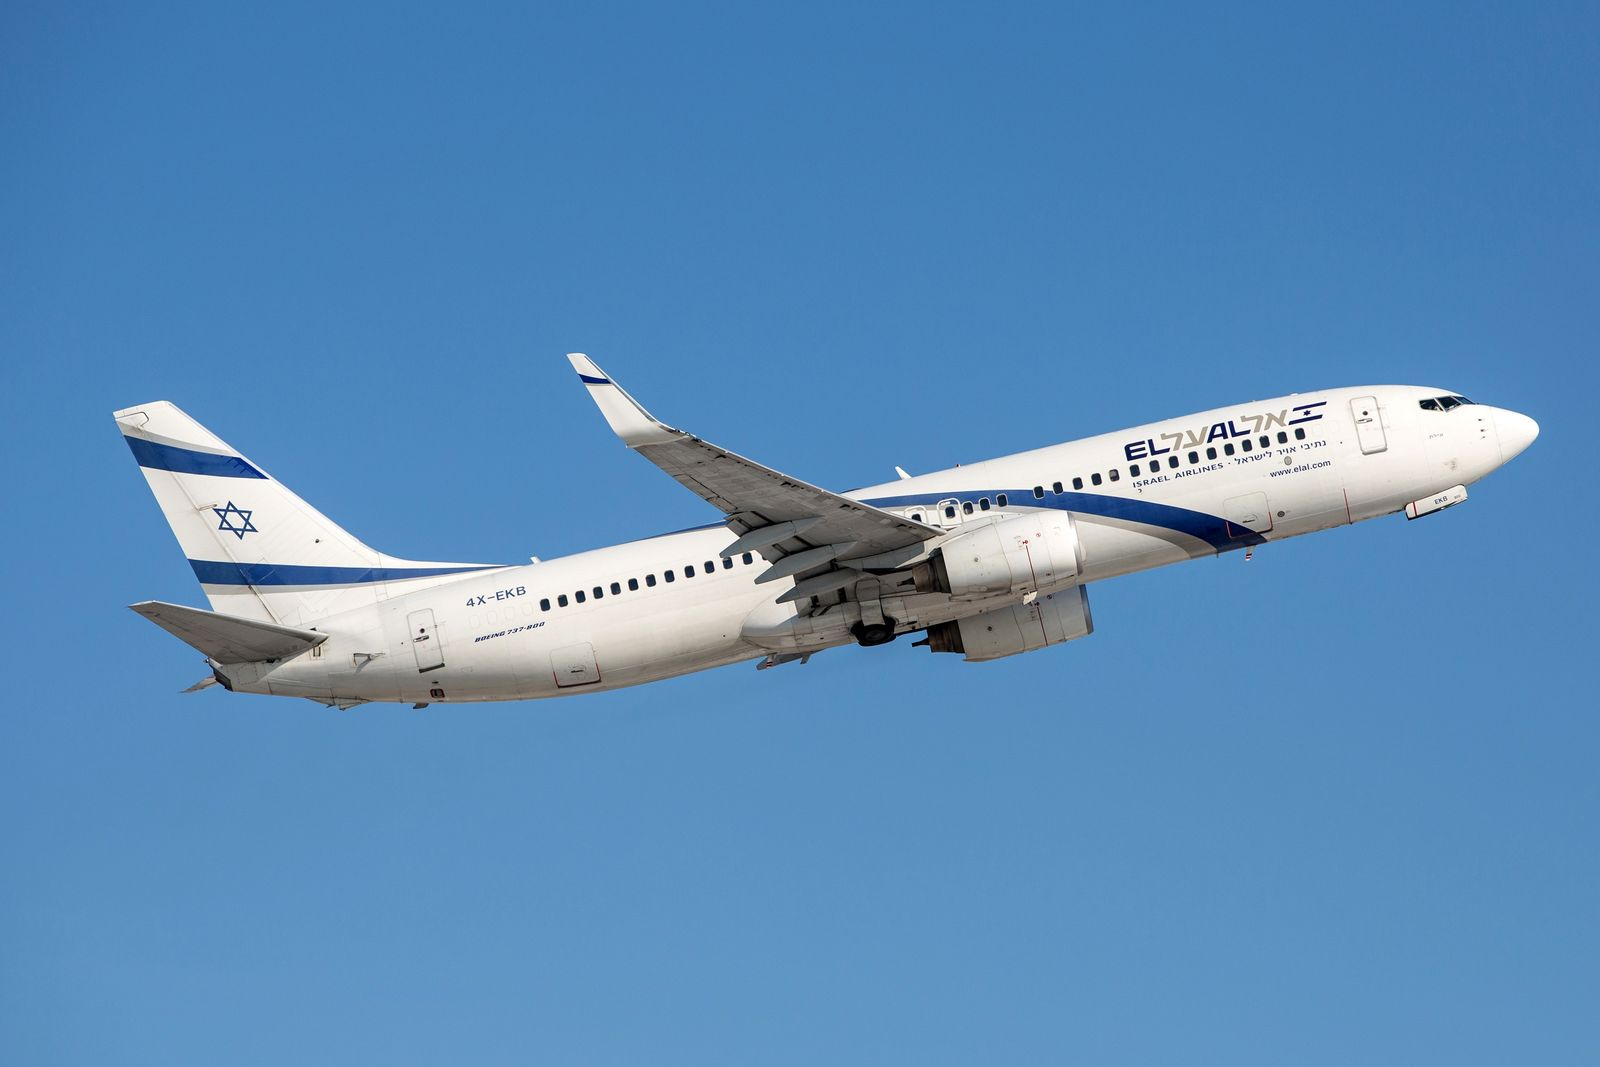 Israel's national airline El Al